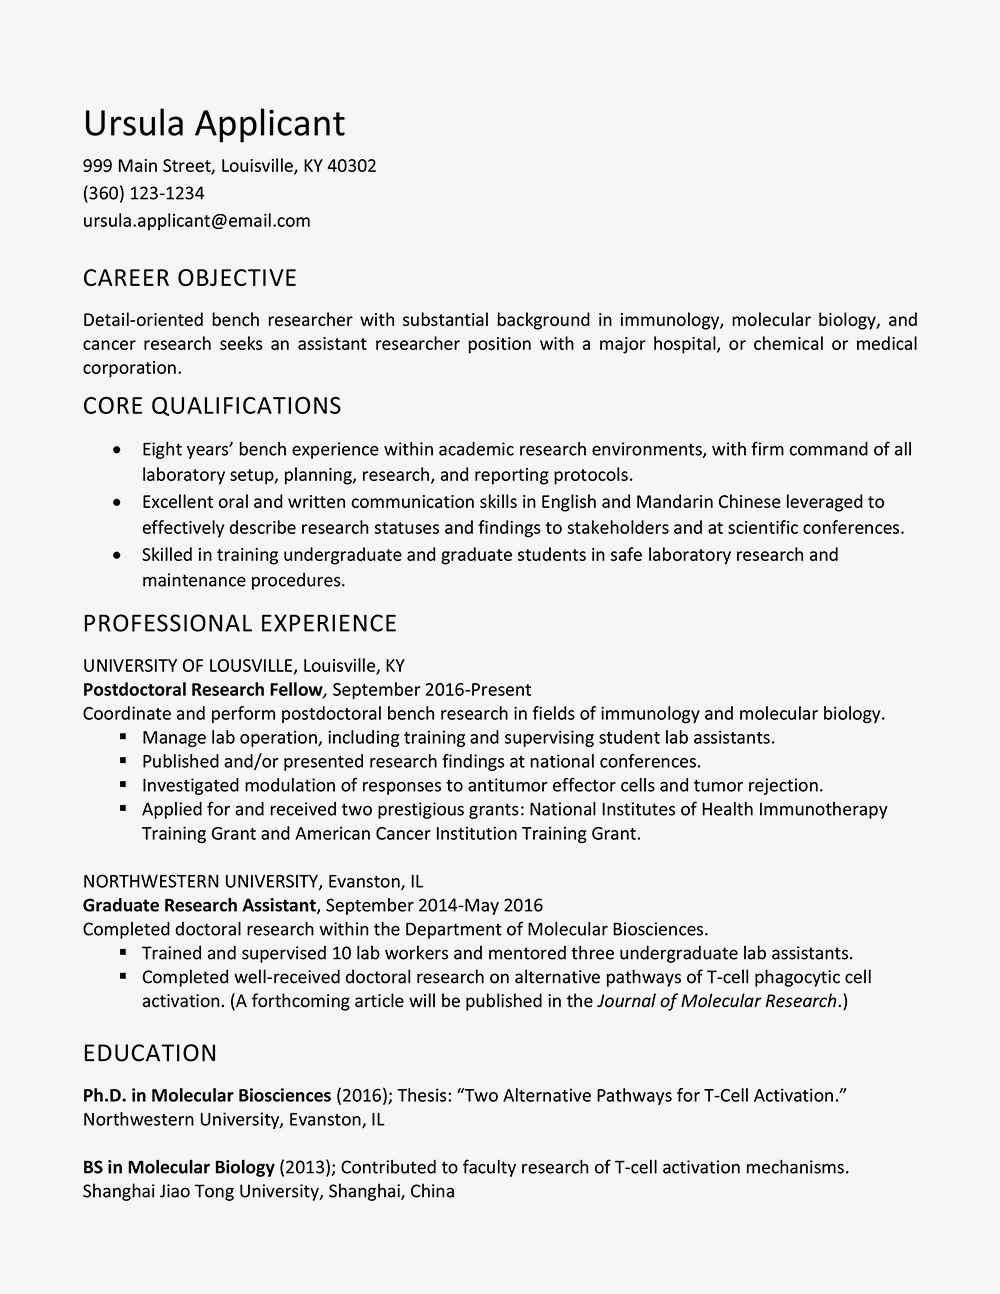 Tableau Fresher Resume - Research assistant Resume Job Description and Skills